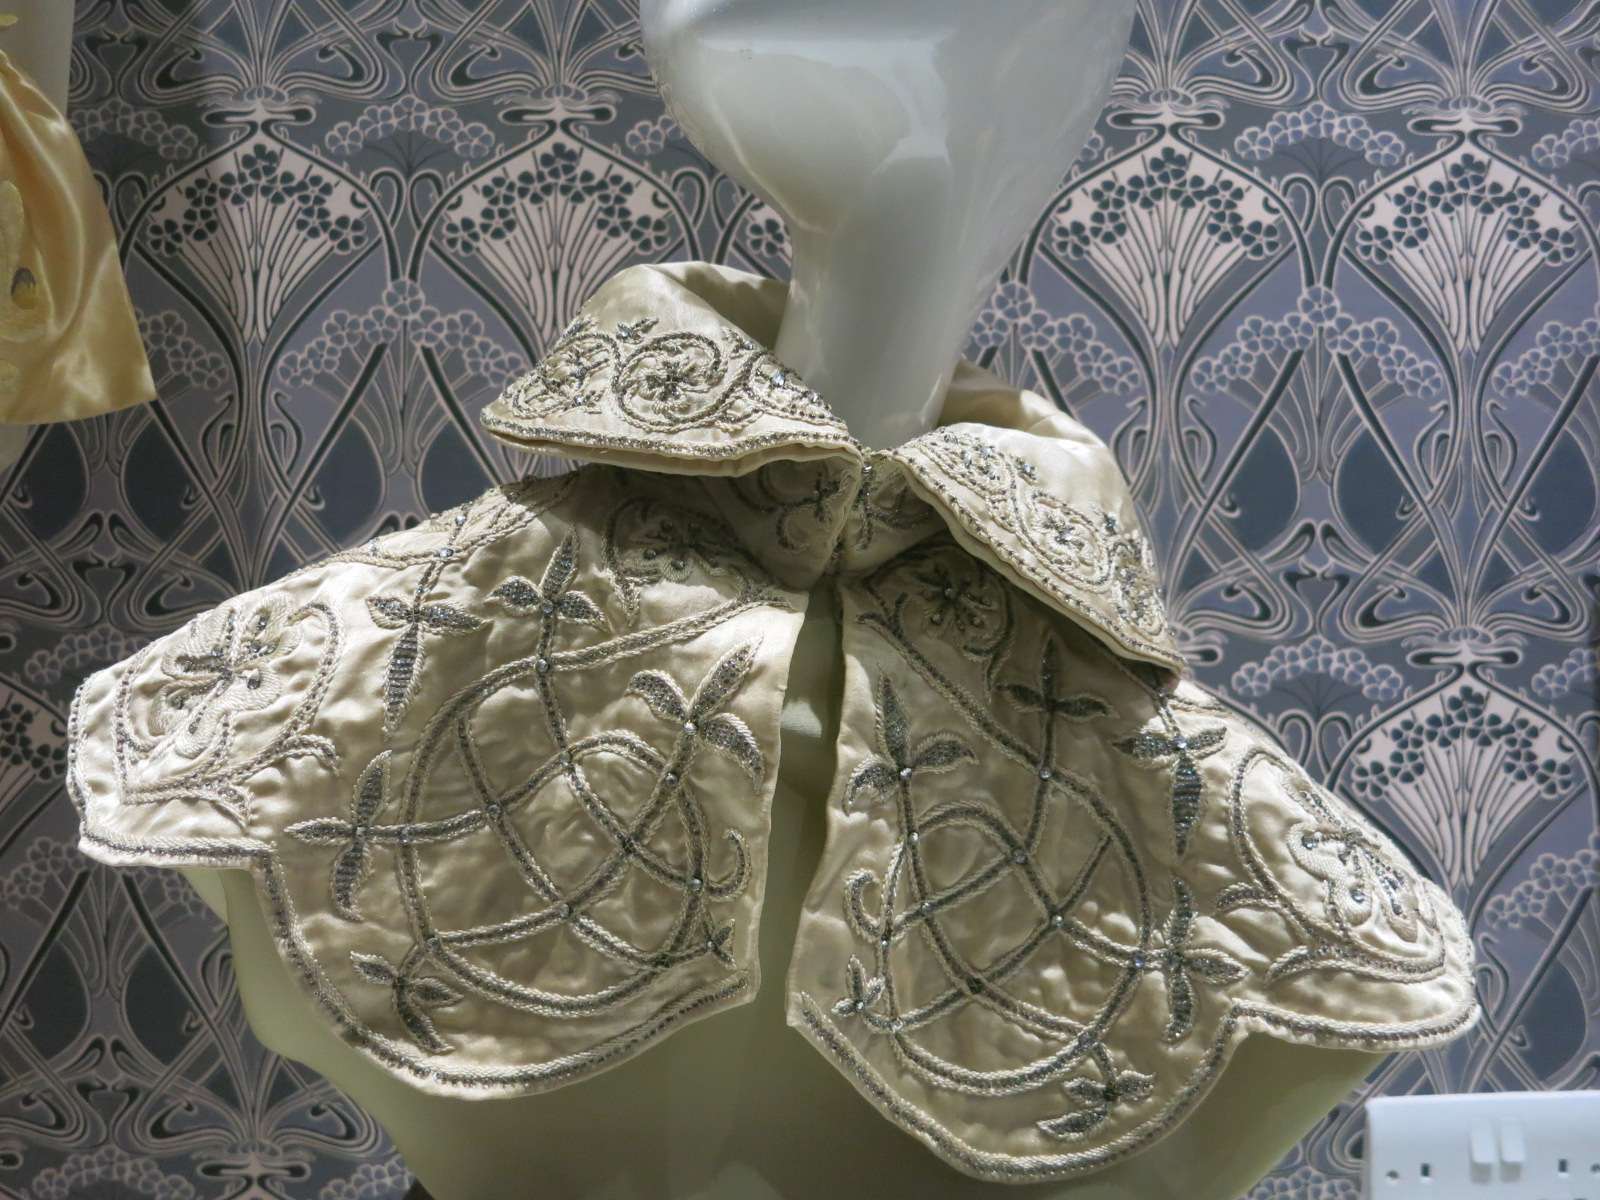 Liberty in Fashion exhibition at the Fashion & Textile Museum, Bermondsey, London 2015. A 1895 satin collar embroidered with white floss, crystal beads and pastes.